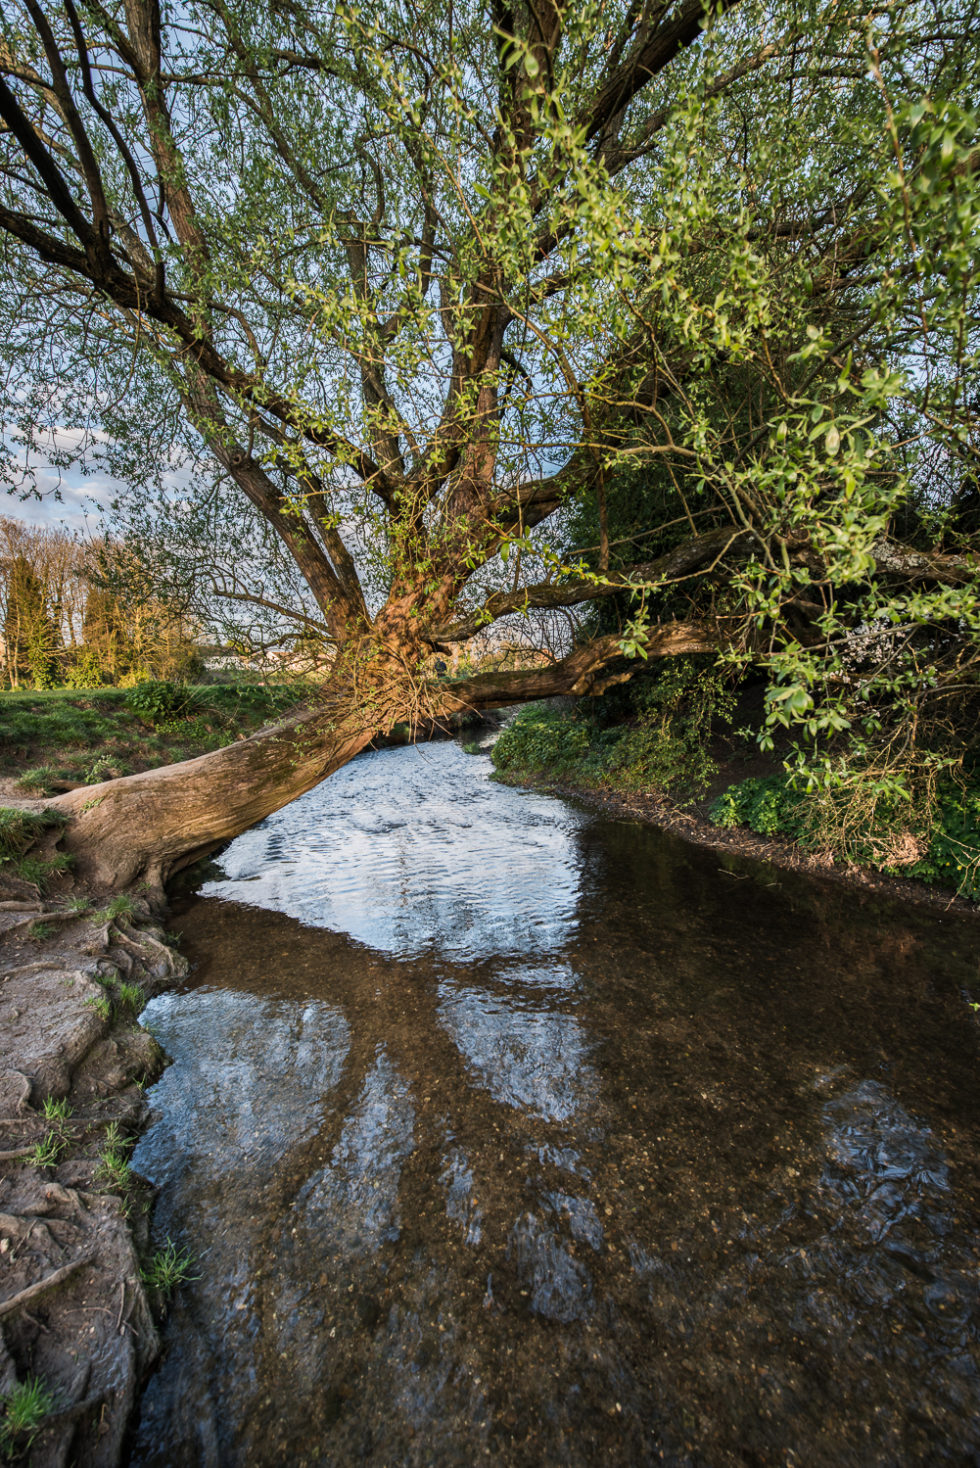 214/365v3 Tree over the River Chelmer